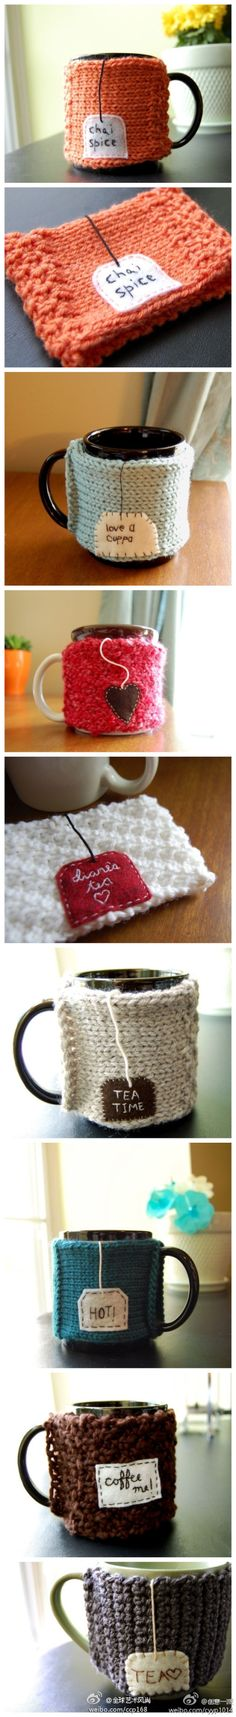 coffee and tea cozies